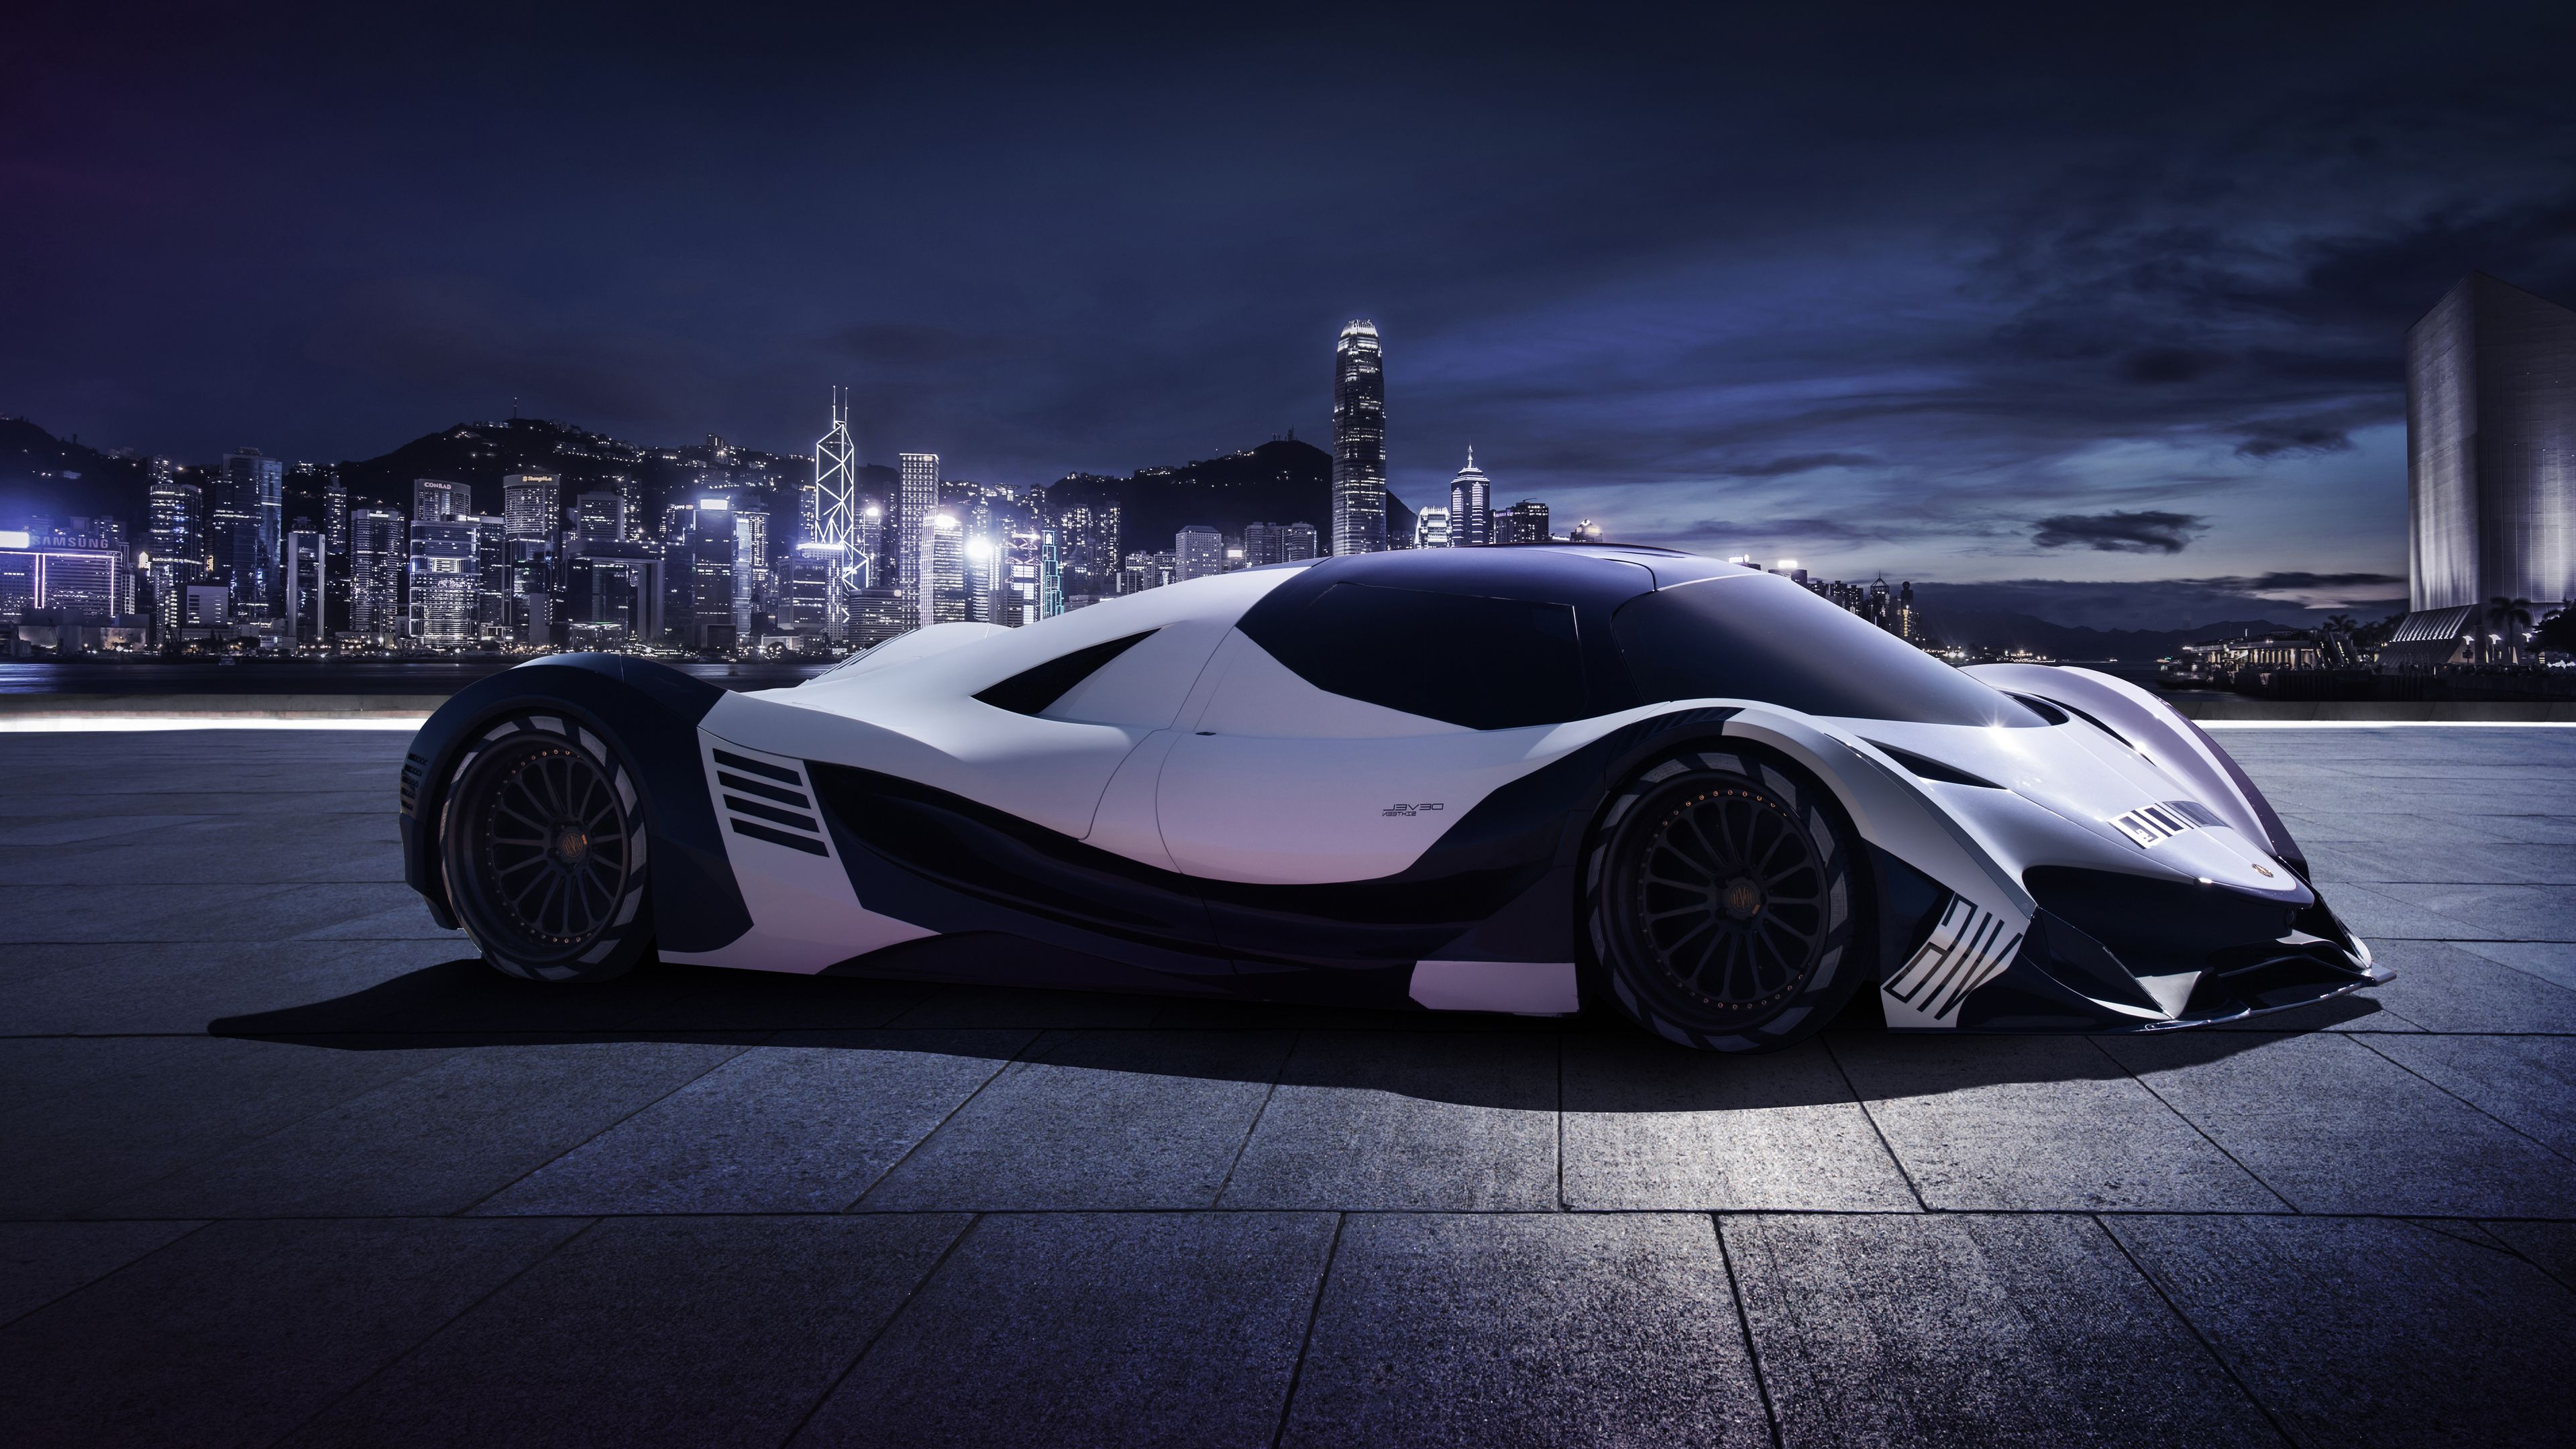 Devel Sixteen 2019 4k Hd Wallpapers Devel Sixteen Wallpapers Concept Cars Wallpapers 5k Wallpapers 4k Wallpapers 2019 Car Super Cars Sports Cars Cool Cars